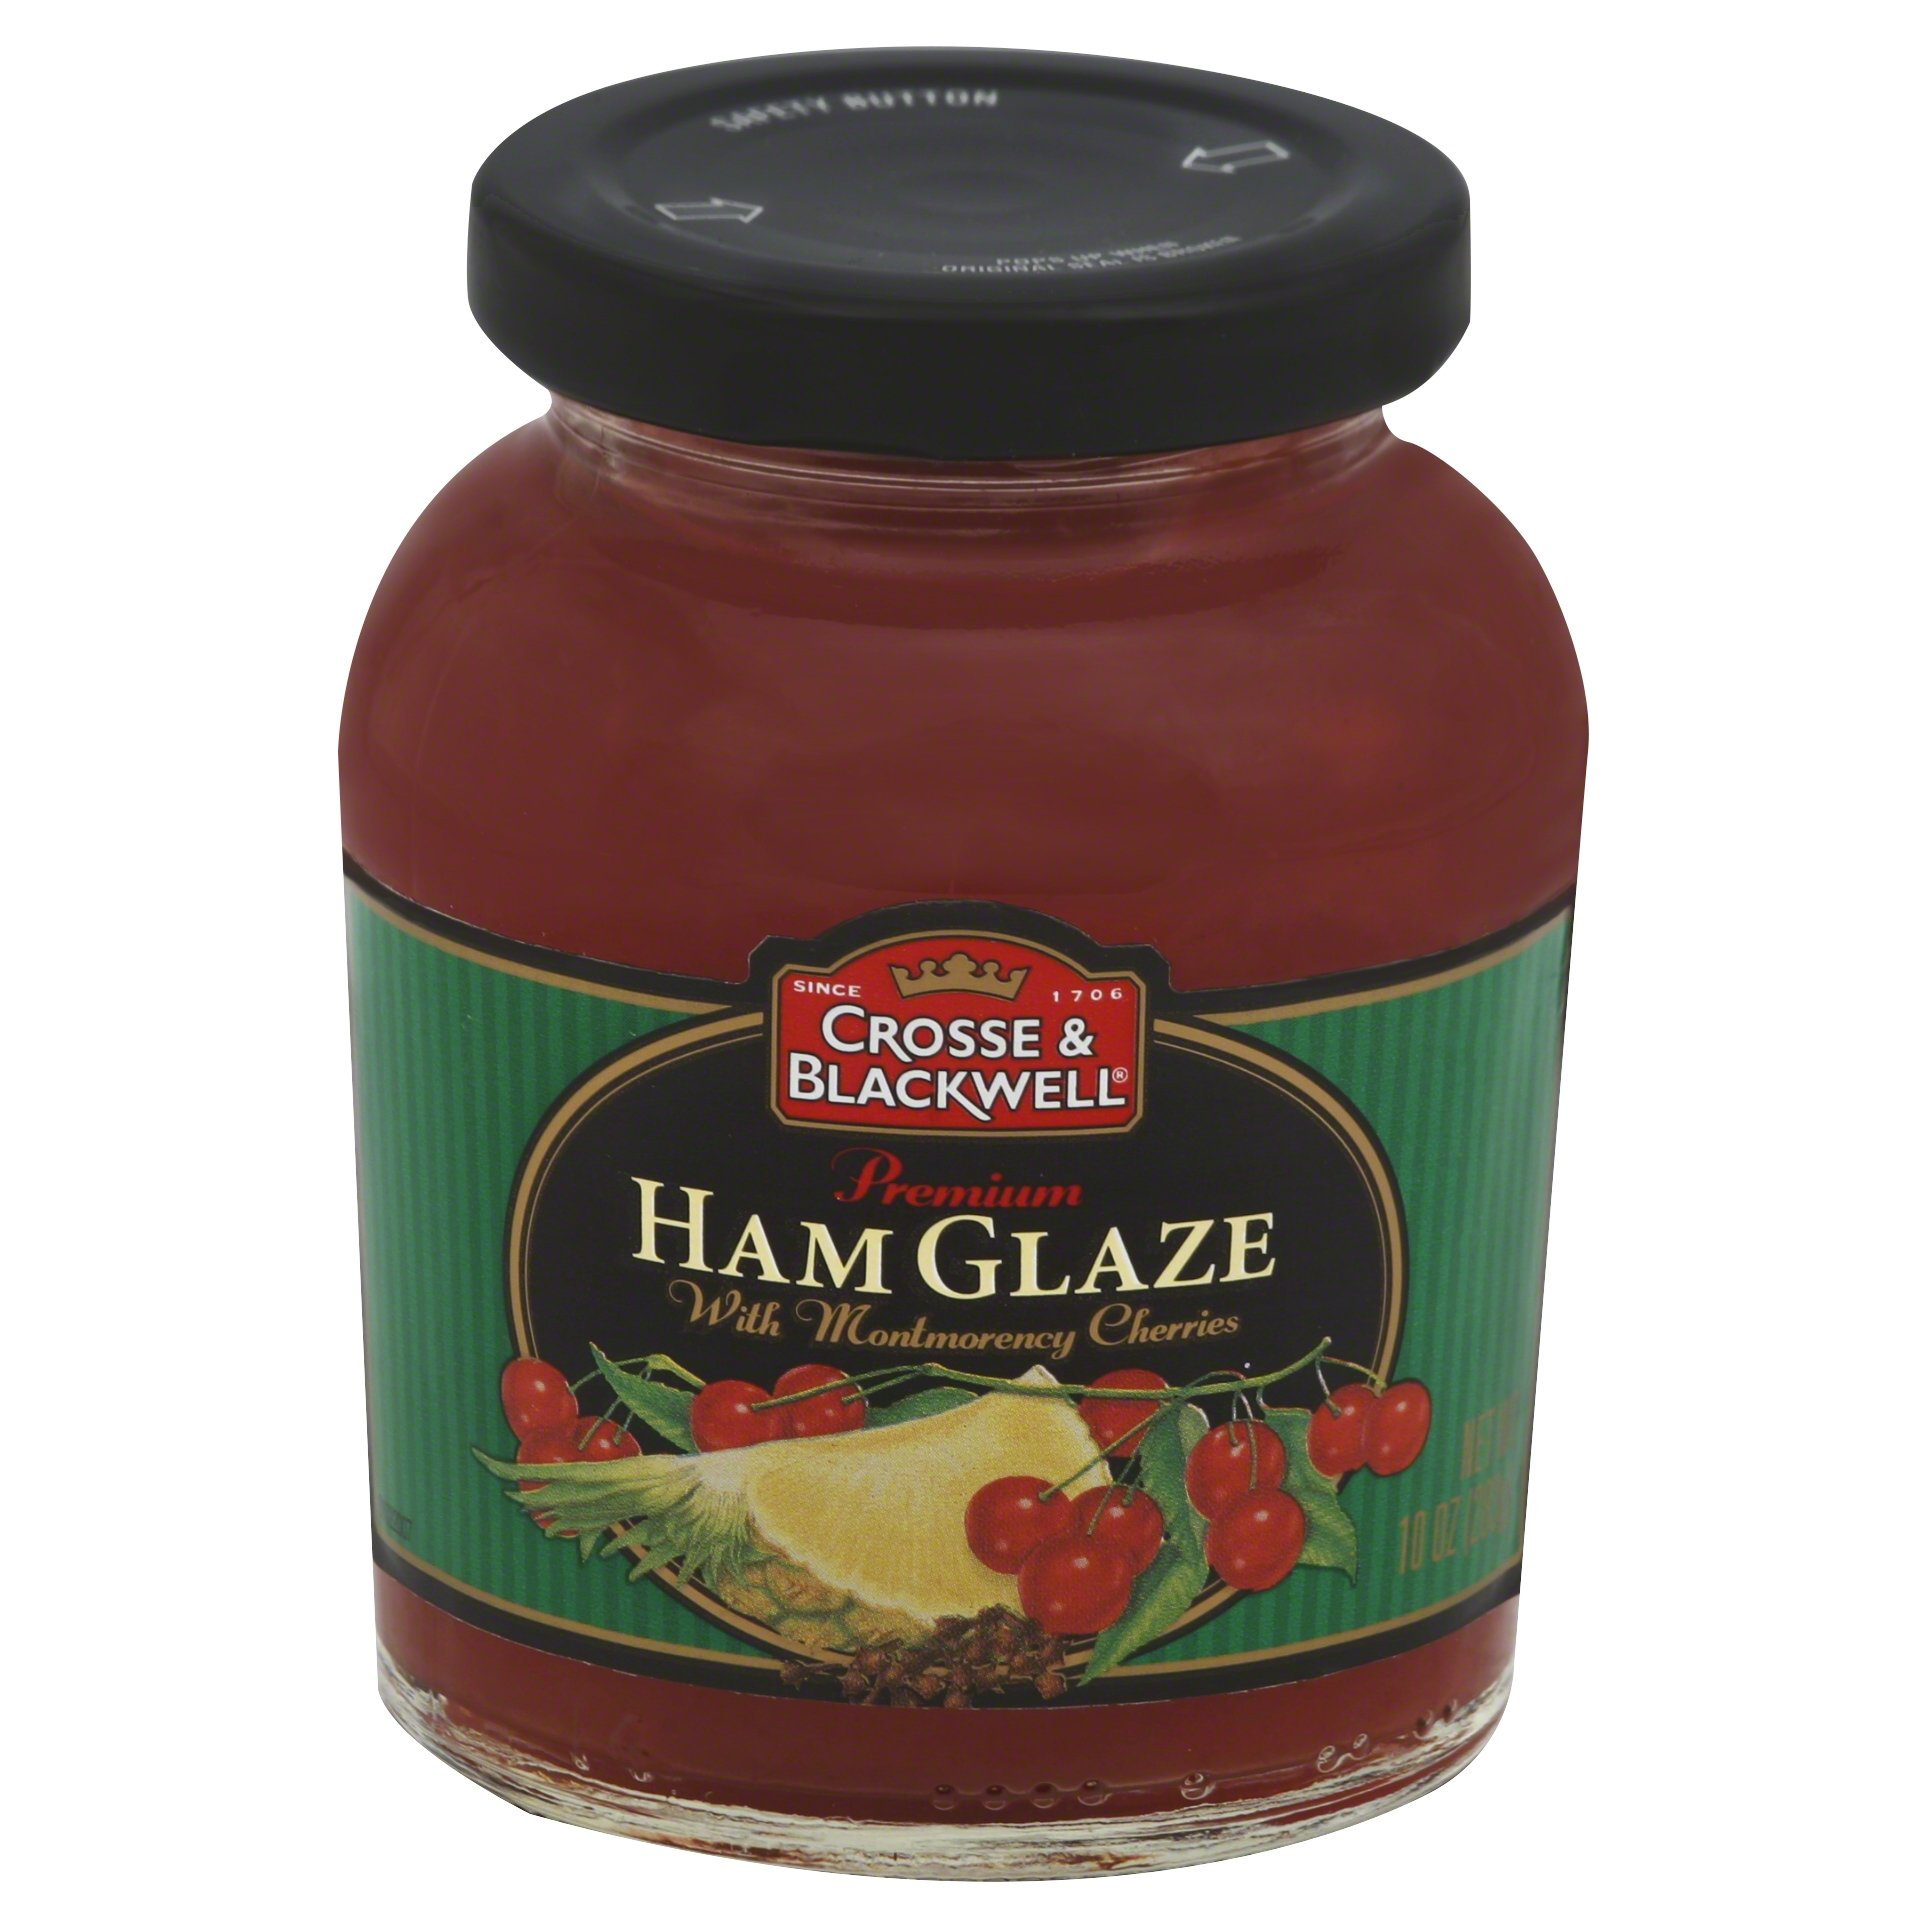 Crosse & Blackwell Premium Ham Glaze With Montmorency Cherries, 10 Ounce (Pack of 6) by Crosse & Blackwell